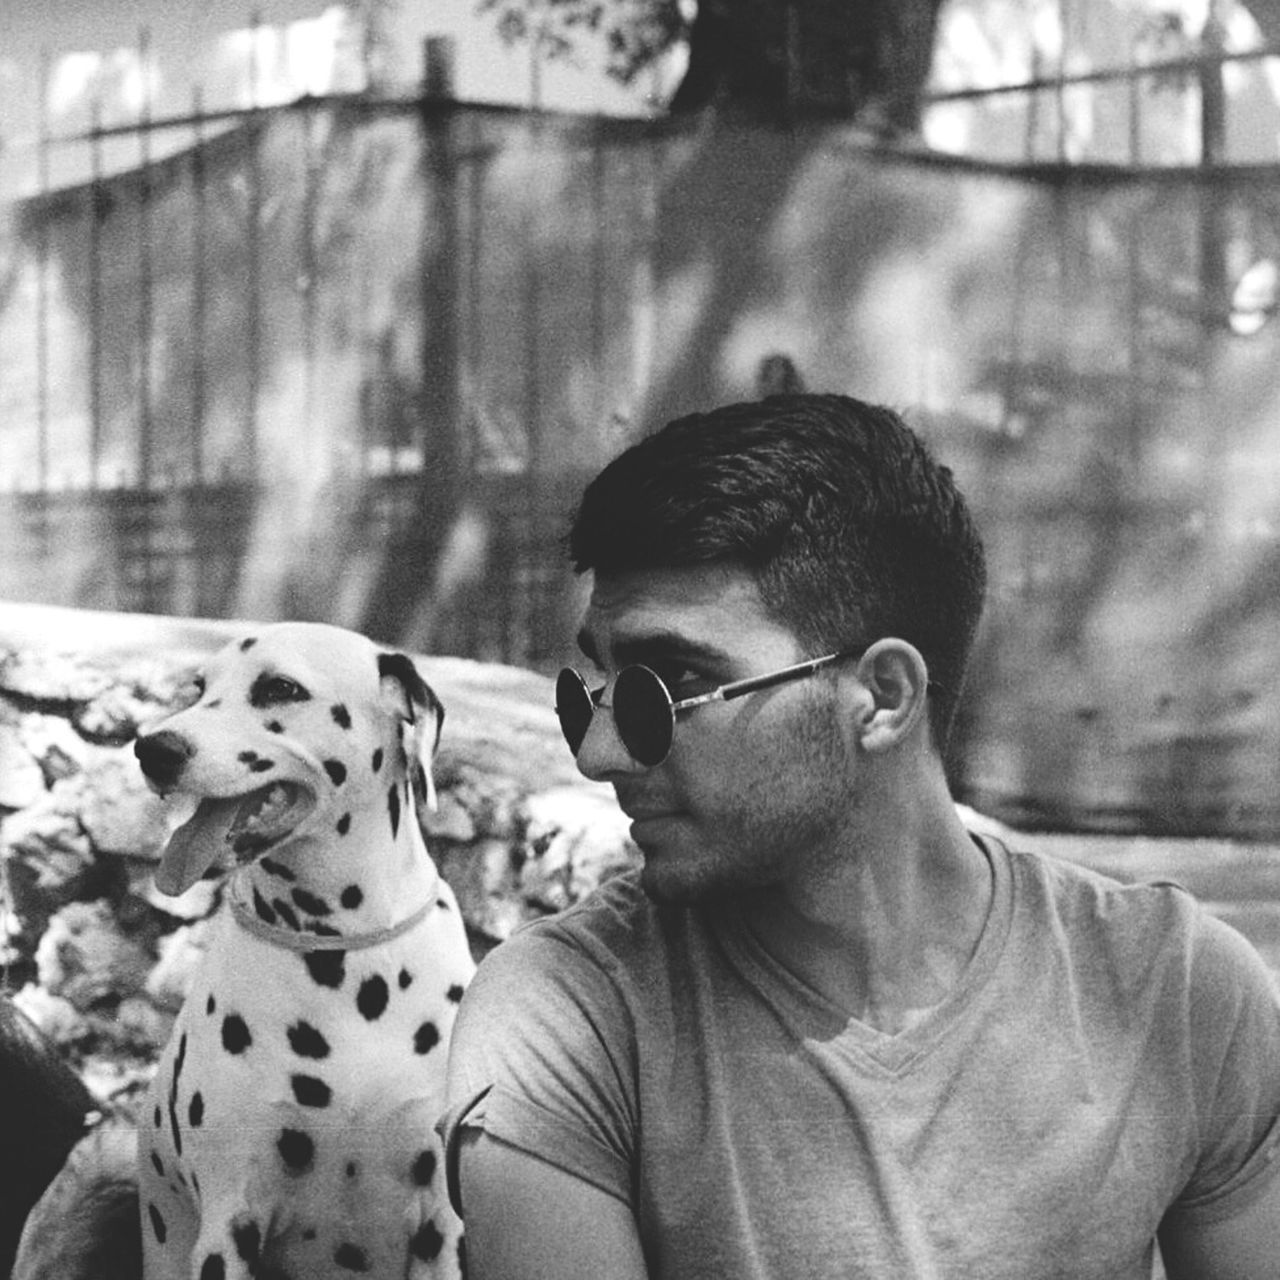 dog, animal themes, pets, one animal, domestic animals, mammal, dalmatian dog, real people, one person, day, focus on foreground, leisure activity, casual clothing, outdoors, lifestyles, sitting, young adult, close-up, nature, people